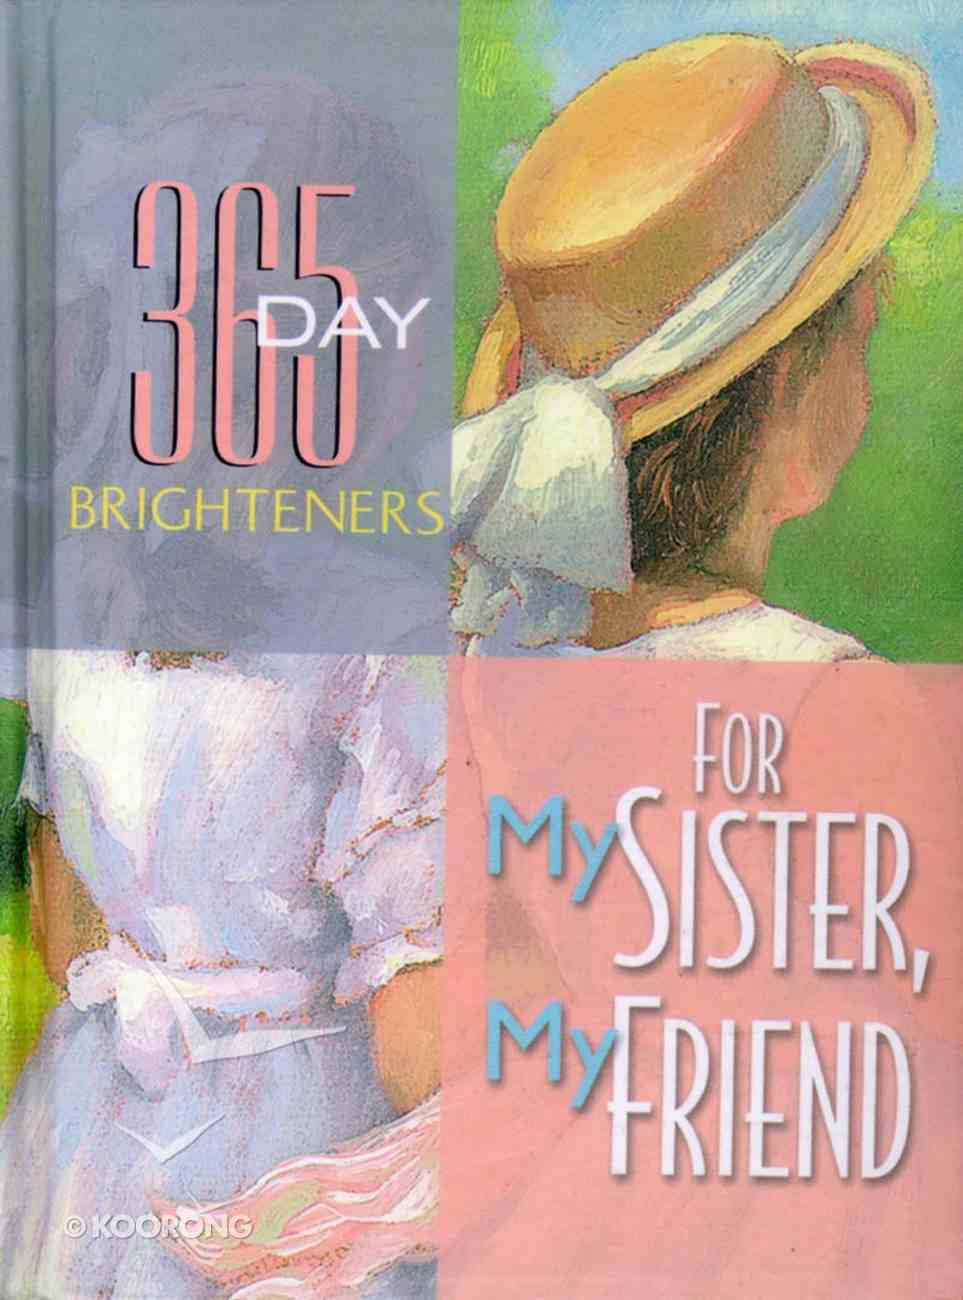 For My Sister, My Friend (365 Day Brighteners Series) Hardback